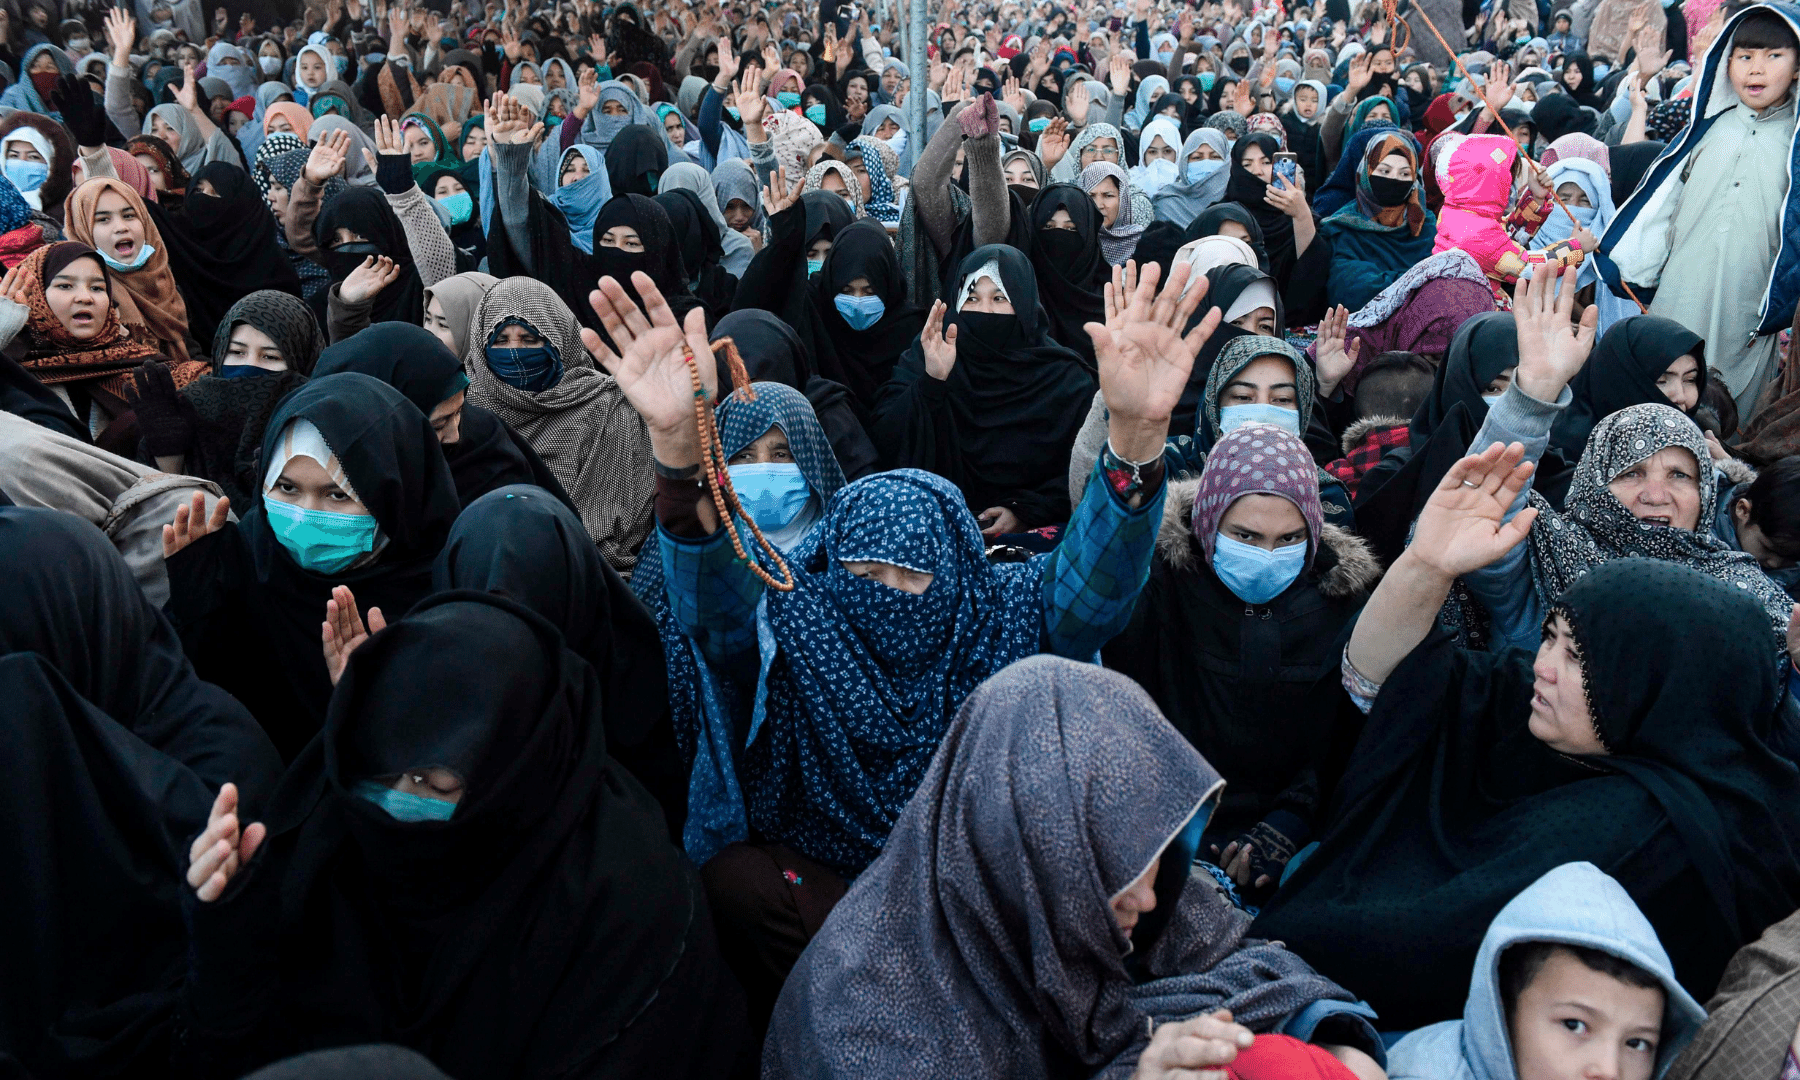 Mourners from the Shia Hazara community gather near the coffins of miners who were killed in an attack by gunmen in the mountainous Machh area, during a sit-in protest on the outskirts of Quetta on Wednesday. — AFP